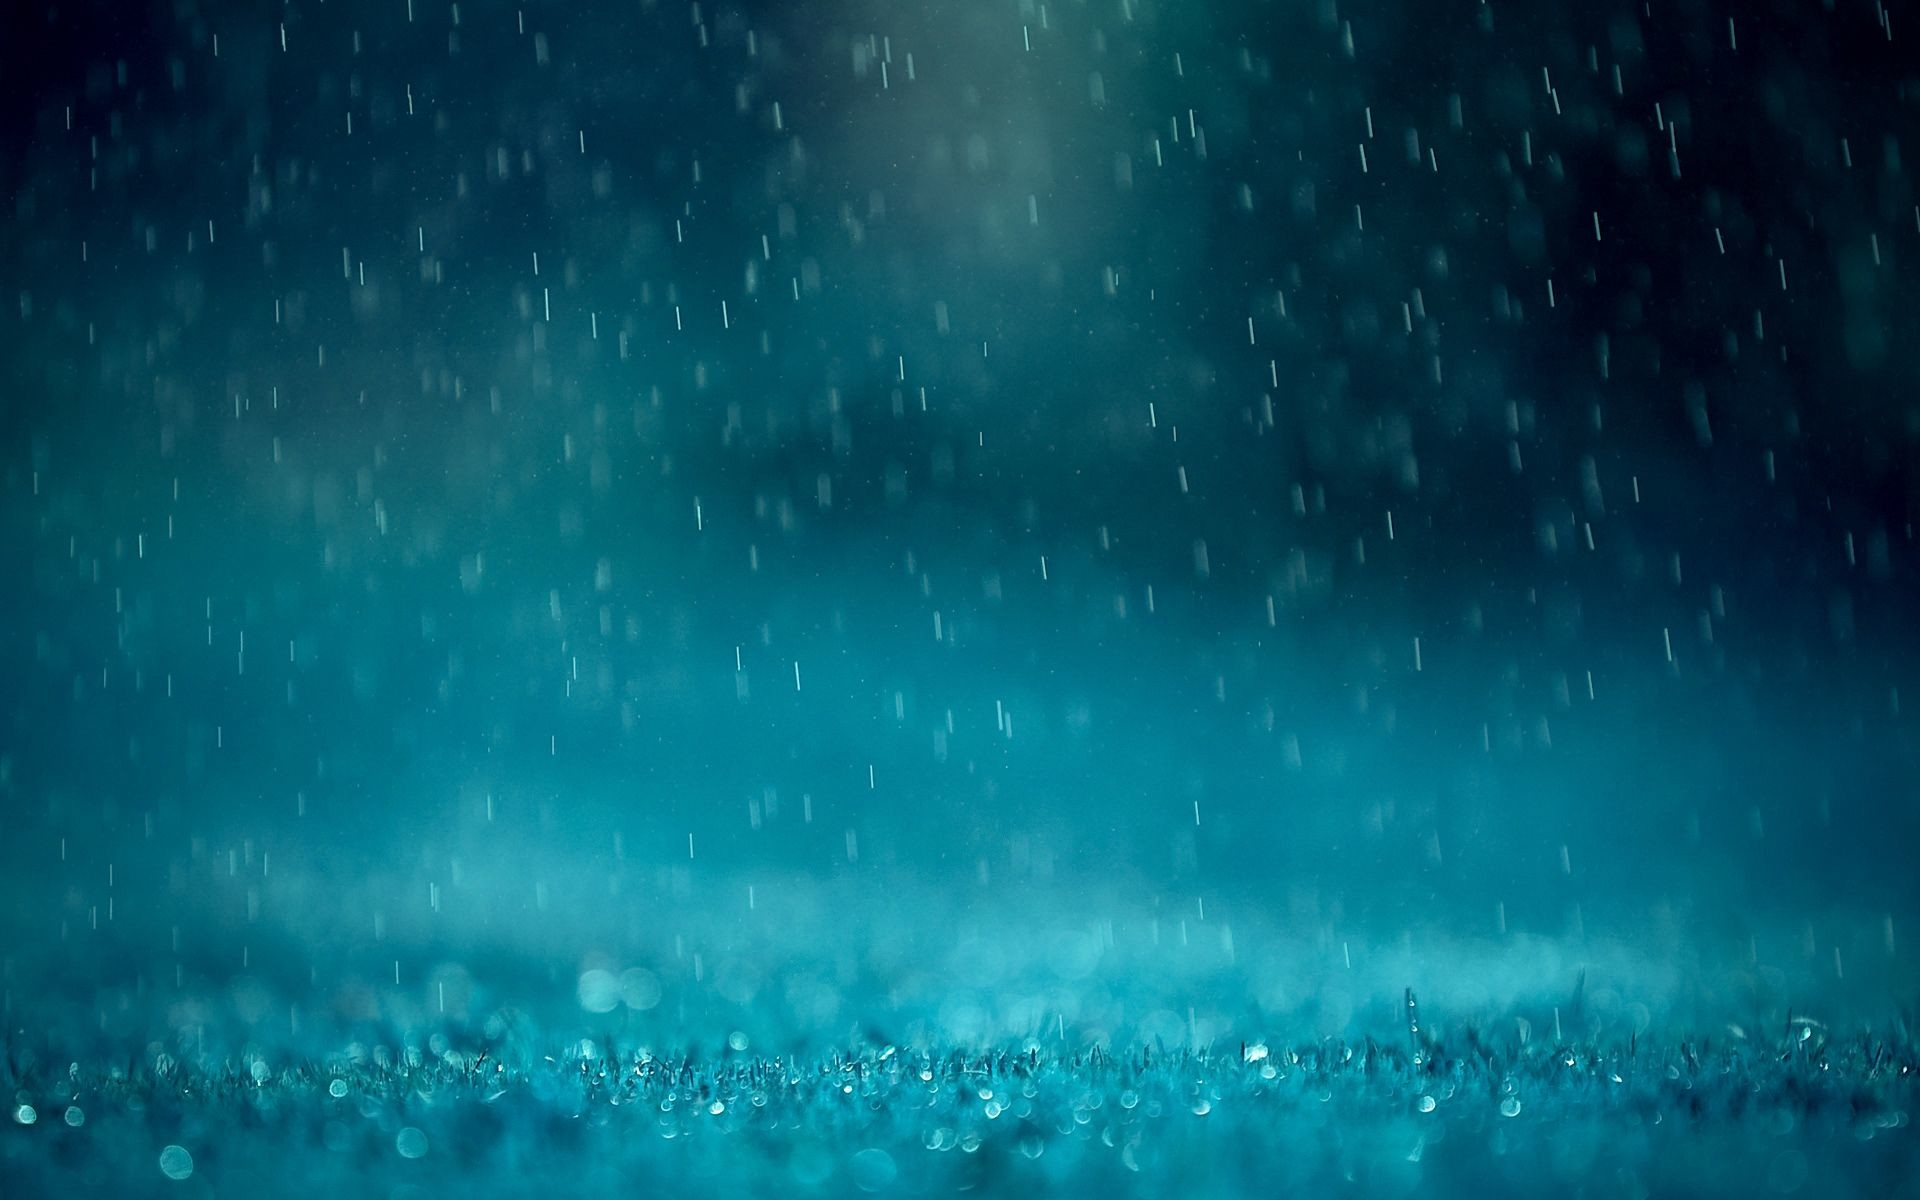 1920x1200 rain wallpaper HD Wallpapers Download Free rain wallpaper Tumblr -  Pinterest Hd Wallpapers